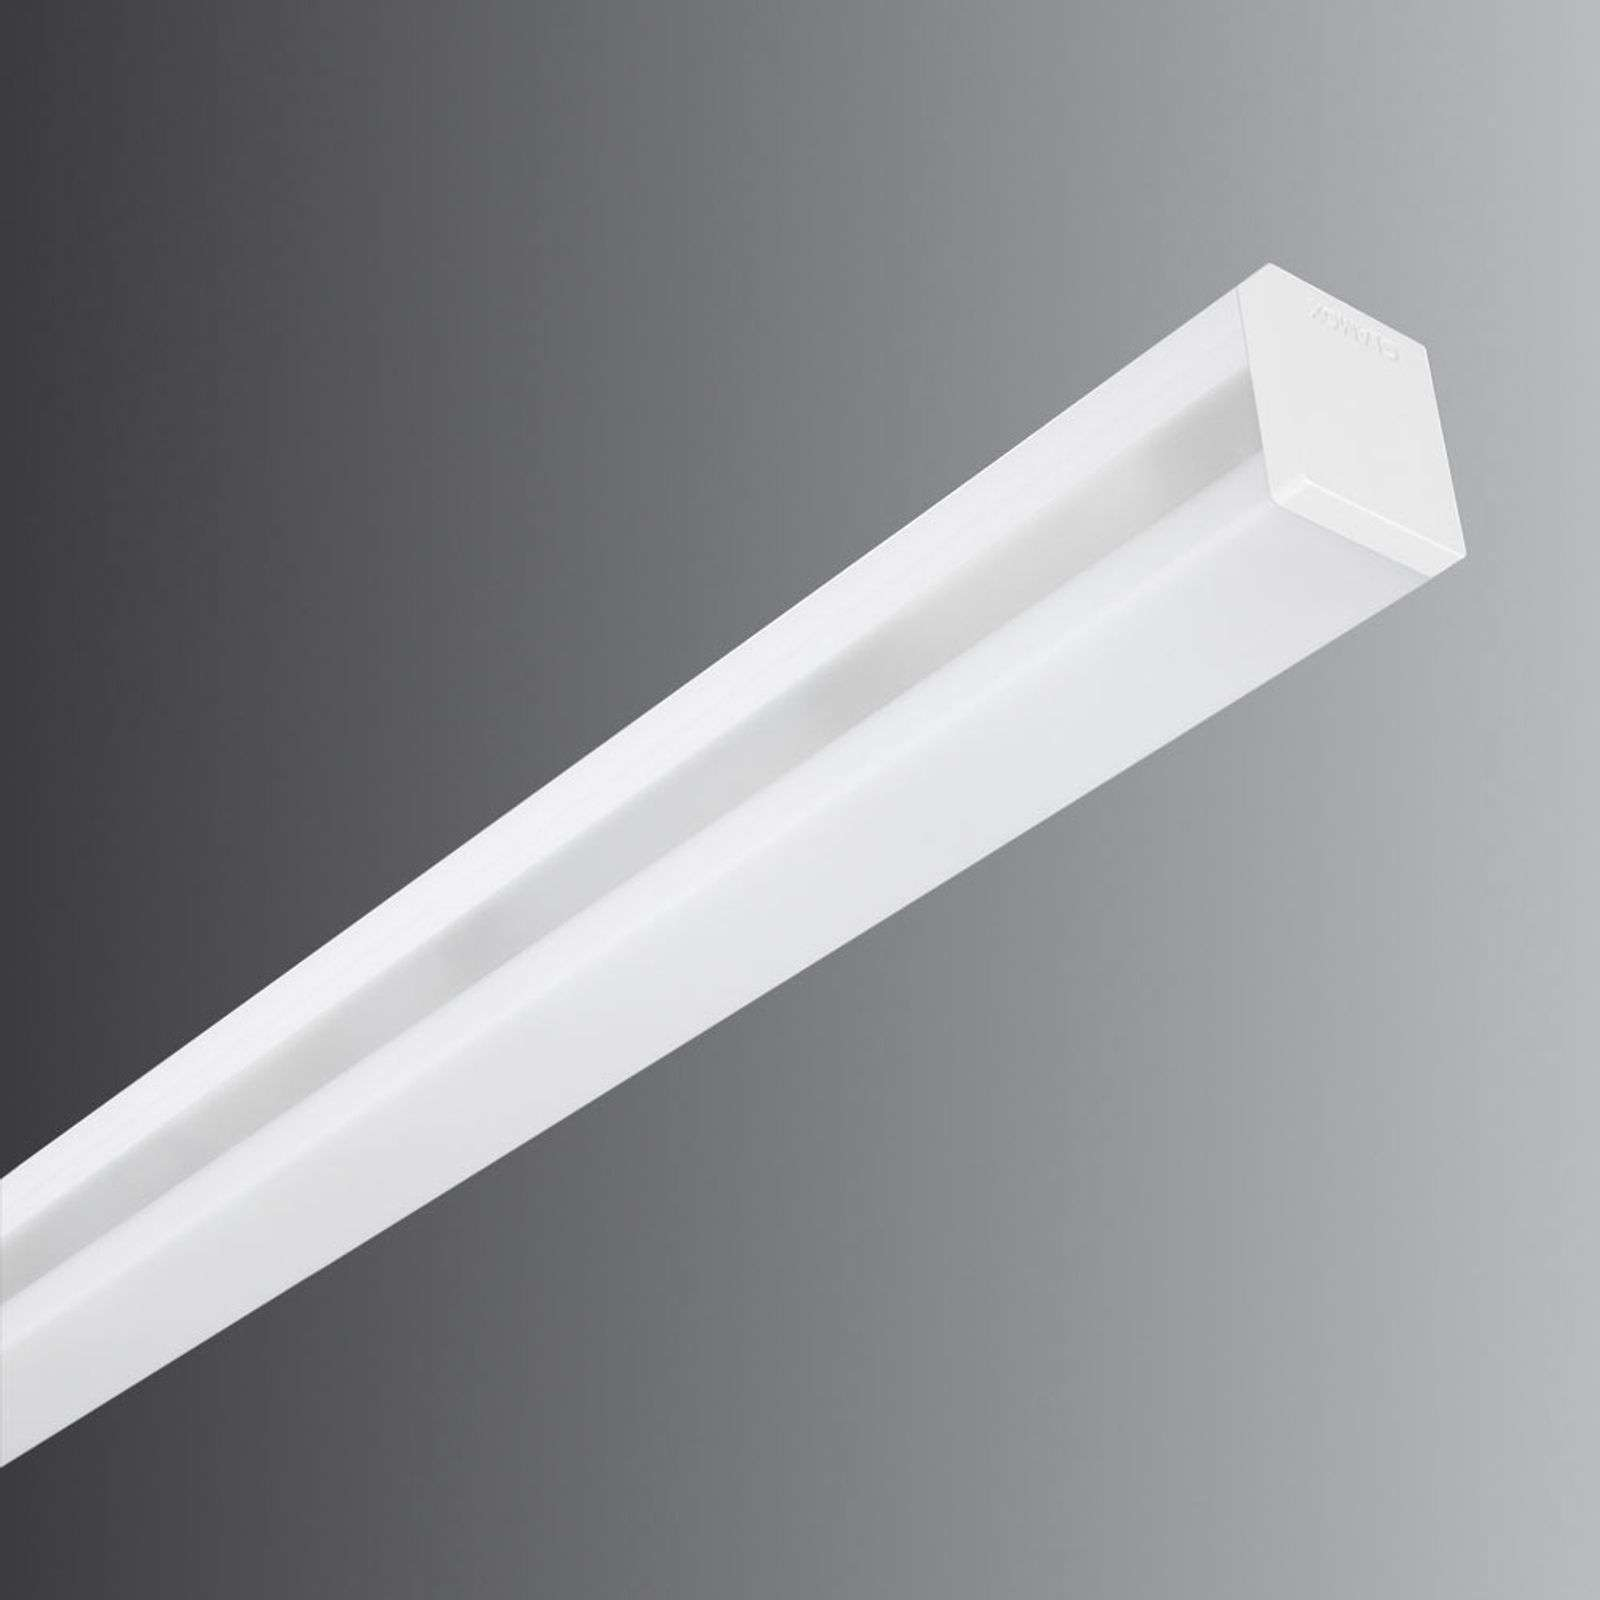 Applique LED 16 W A40-W1200 2100HF 120cm 4 000 K